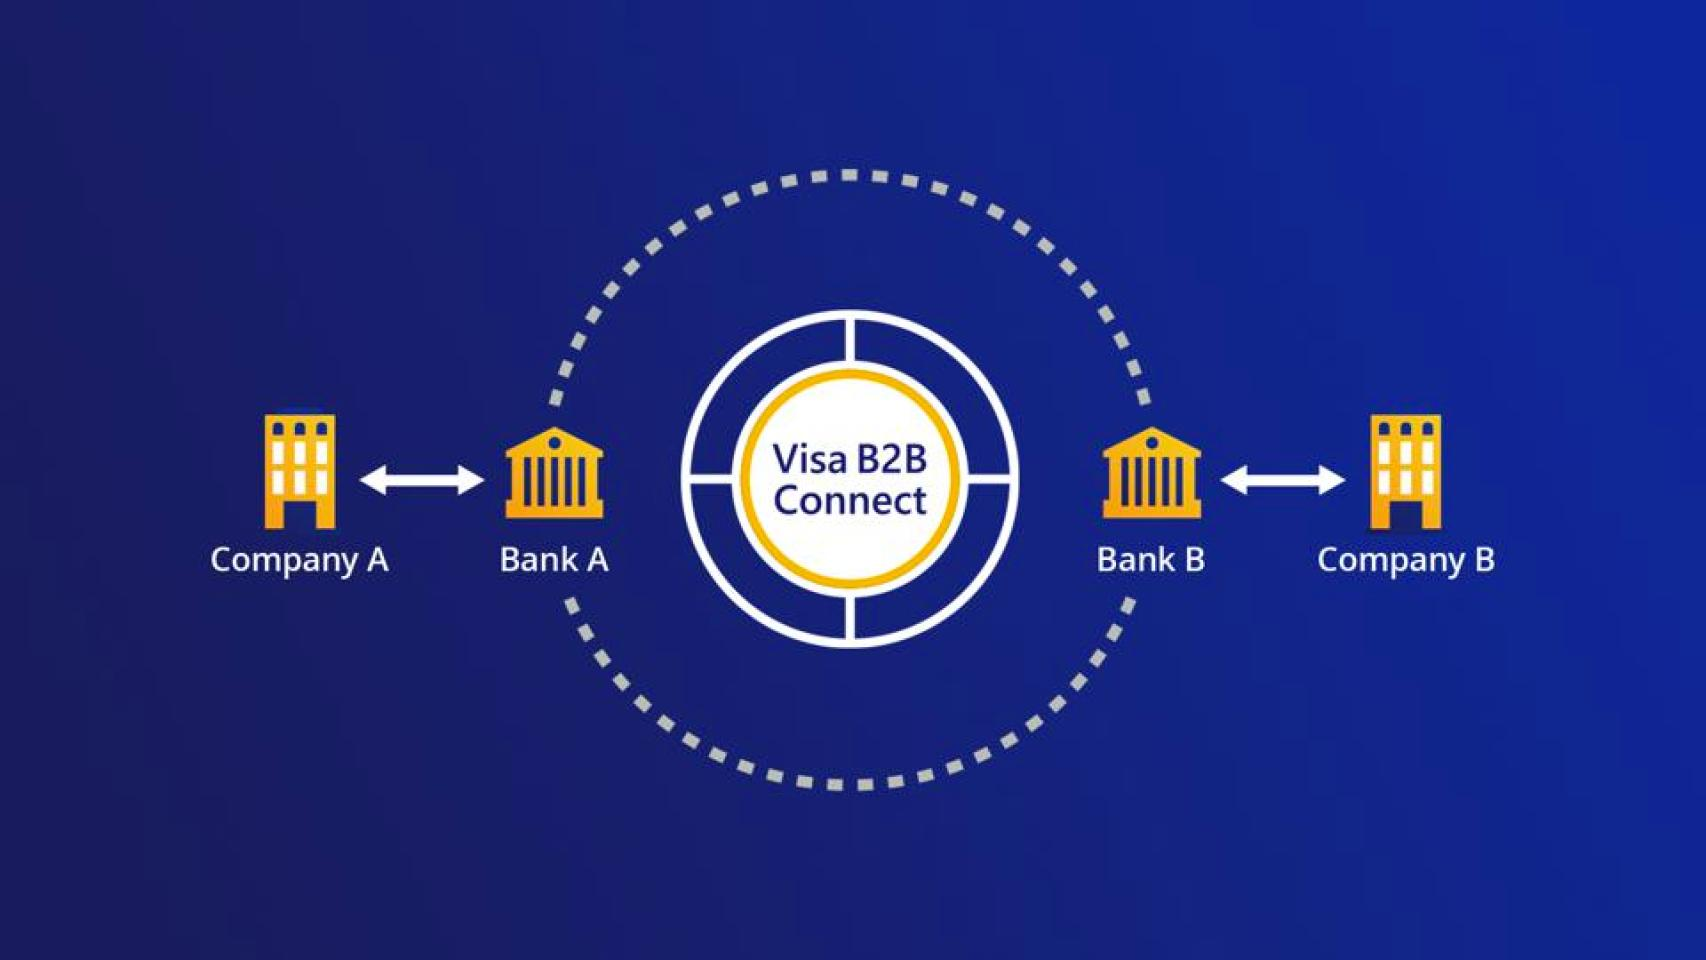 960x0 - Visa Enters The $125 Trillion Global Money Transfer Market With New Blockchain Product